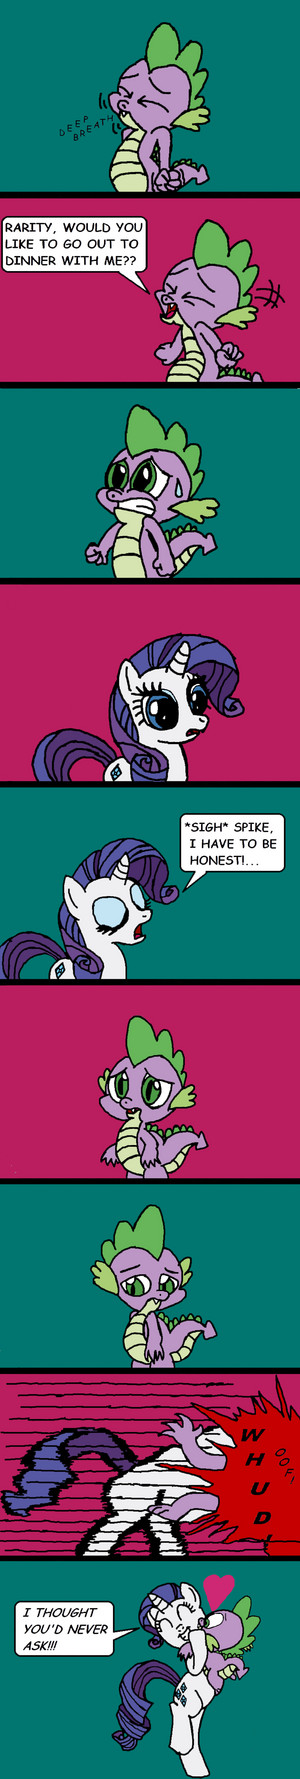 Spike Asks Rarity Out